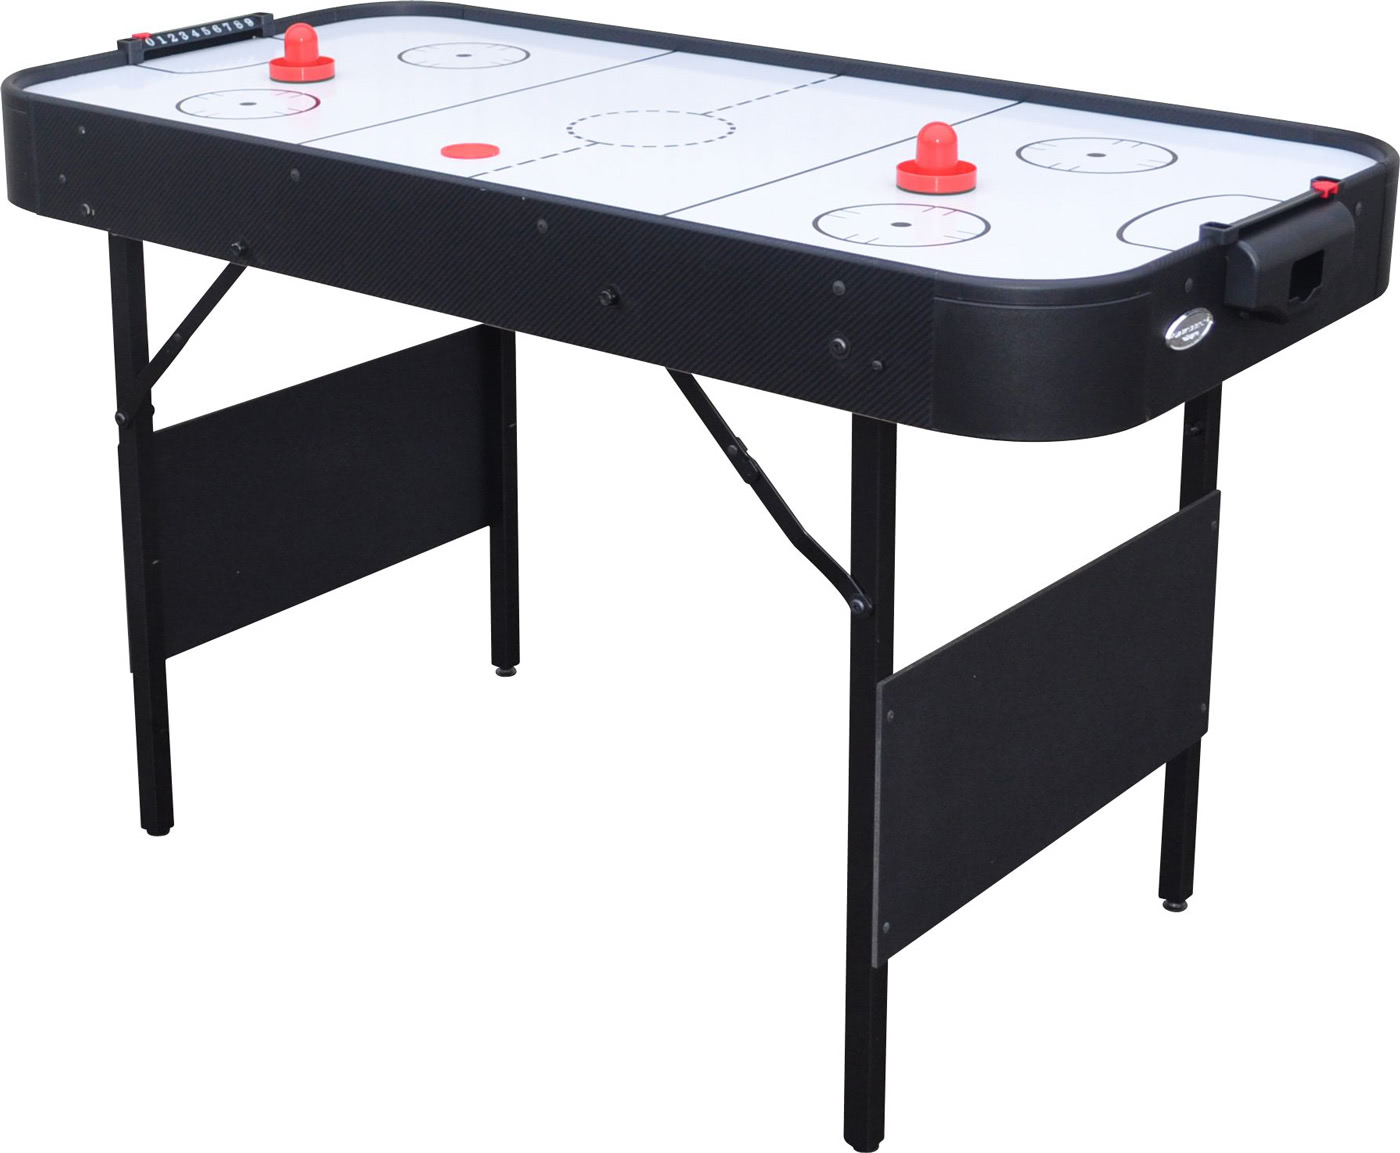 Gamesson shark 4 foot air hockey table liberty games for Table hockey